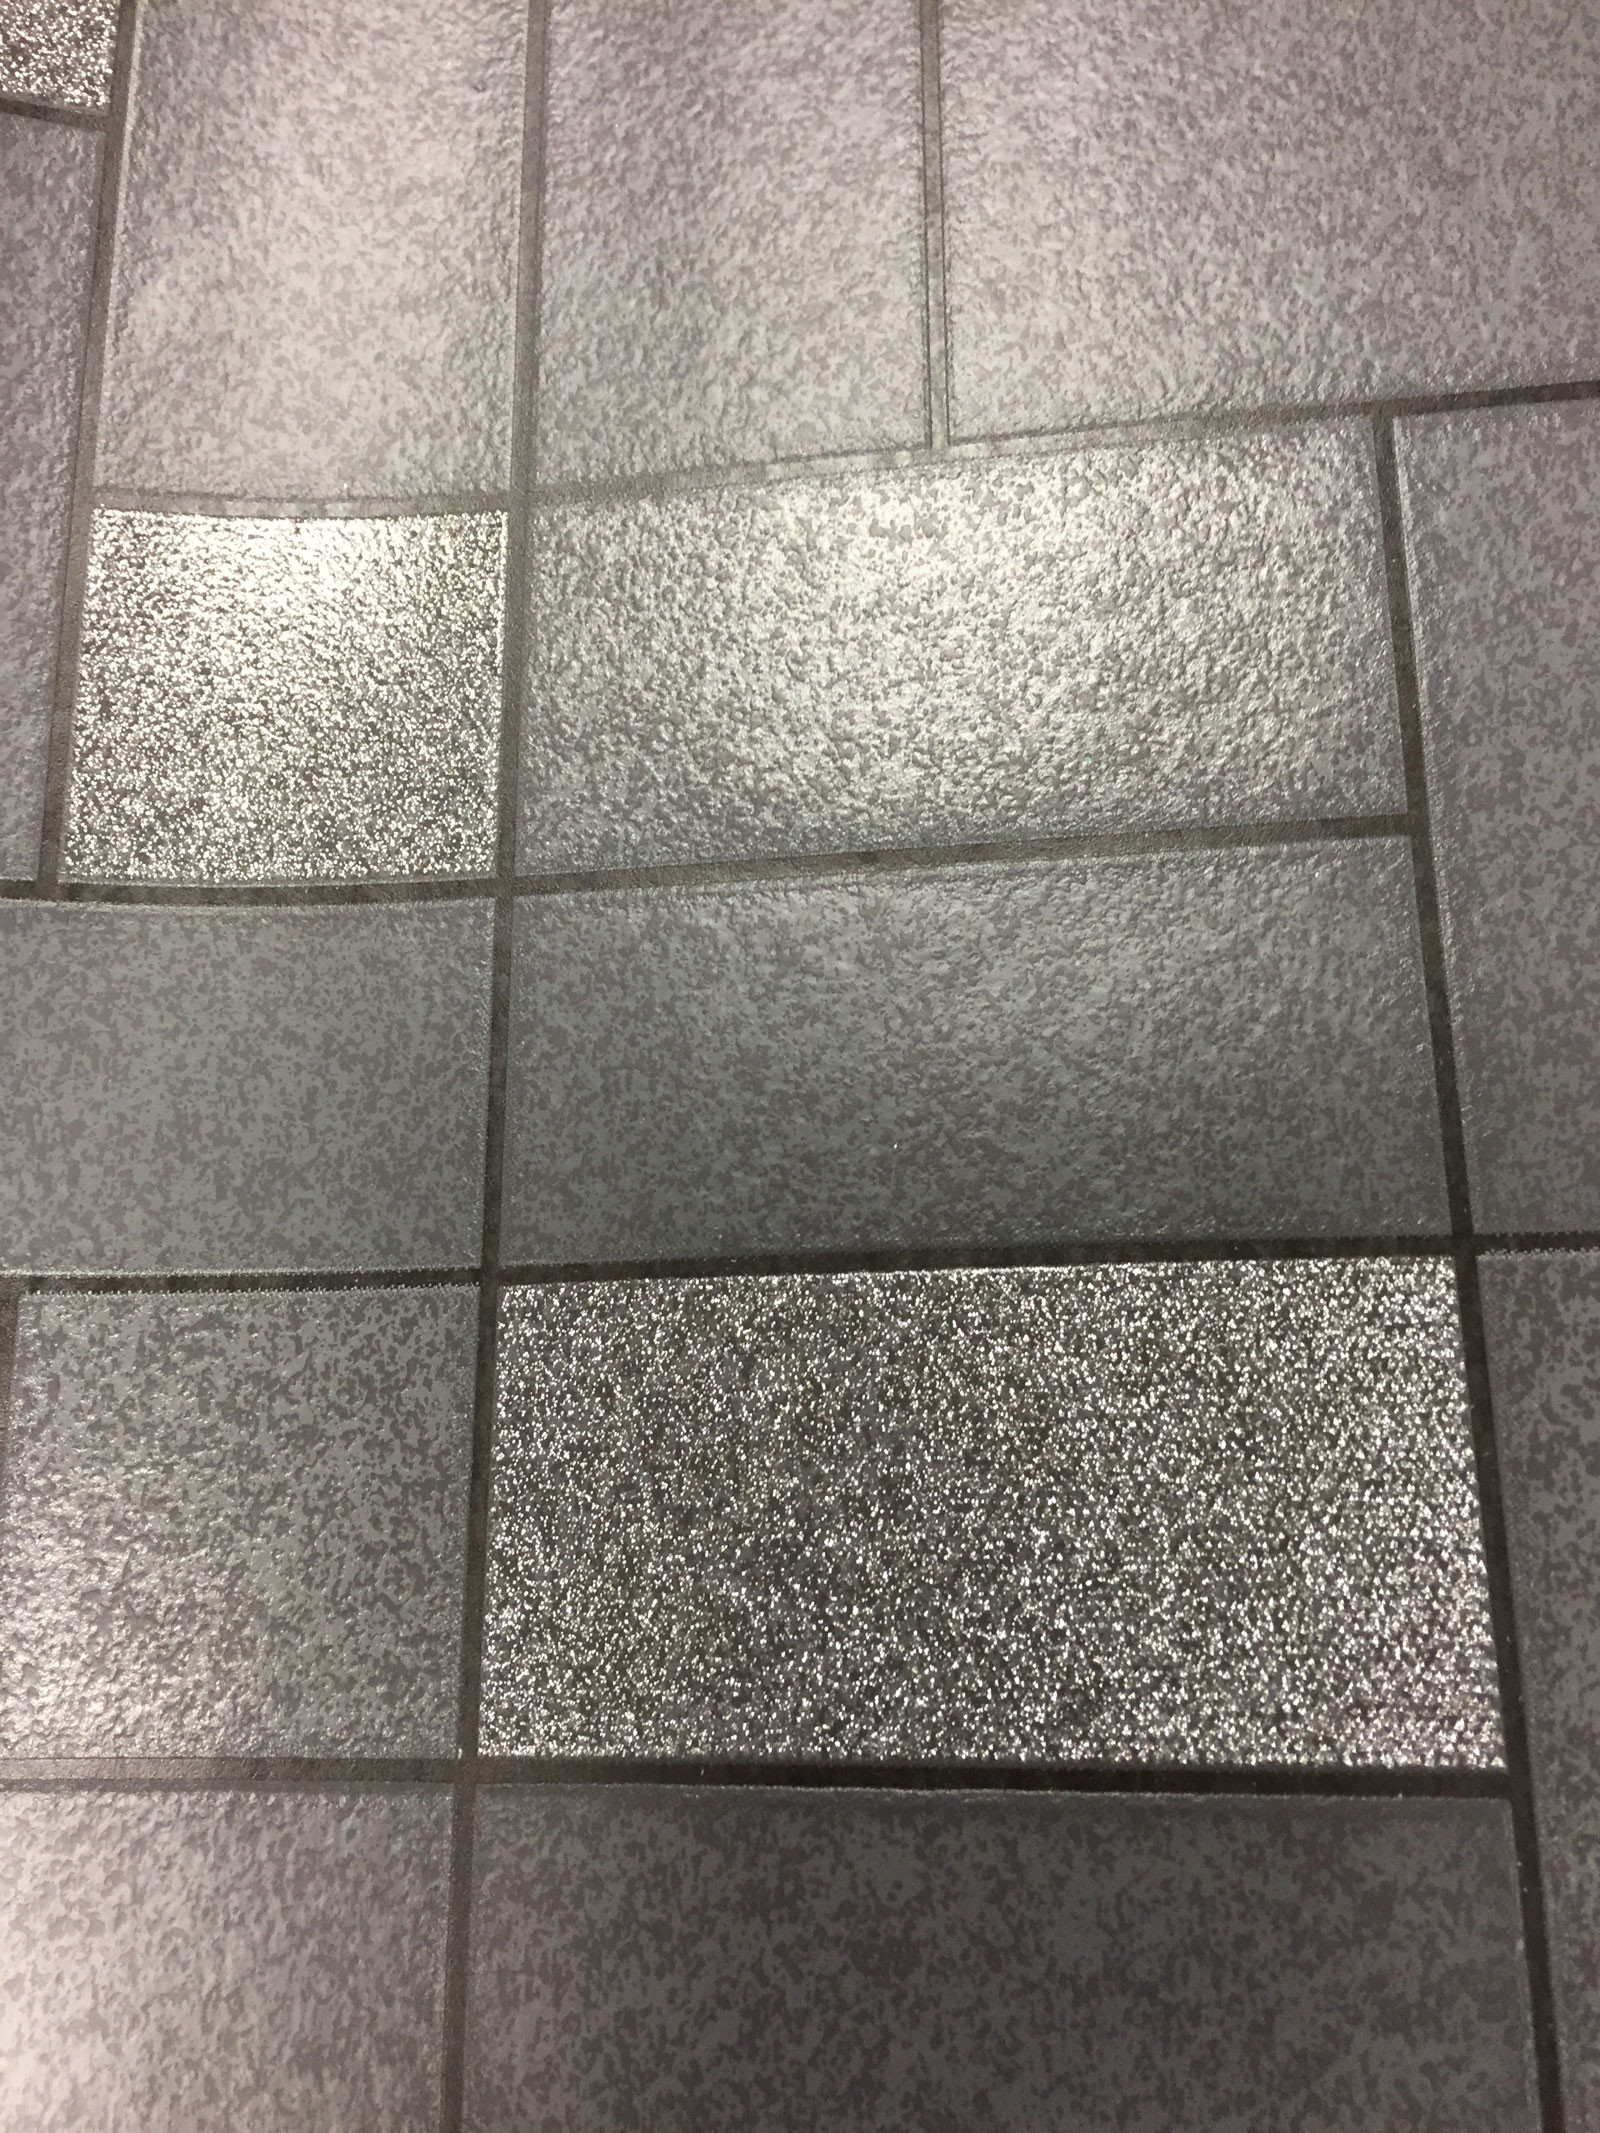 Res: 1600x2133, Glitter Tile Wallpaper Sparkle Washable Vinyl Kitchen Bathroom Black Silver